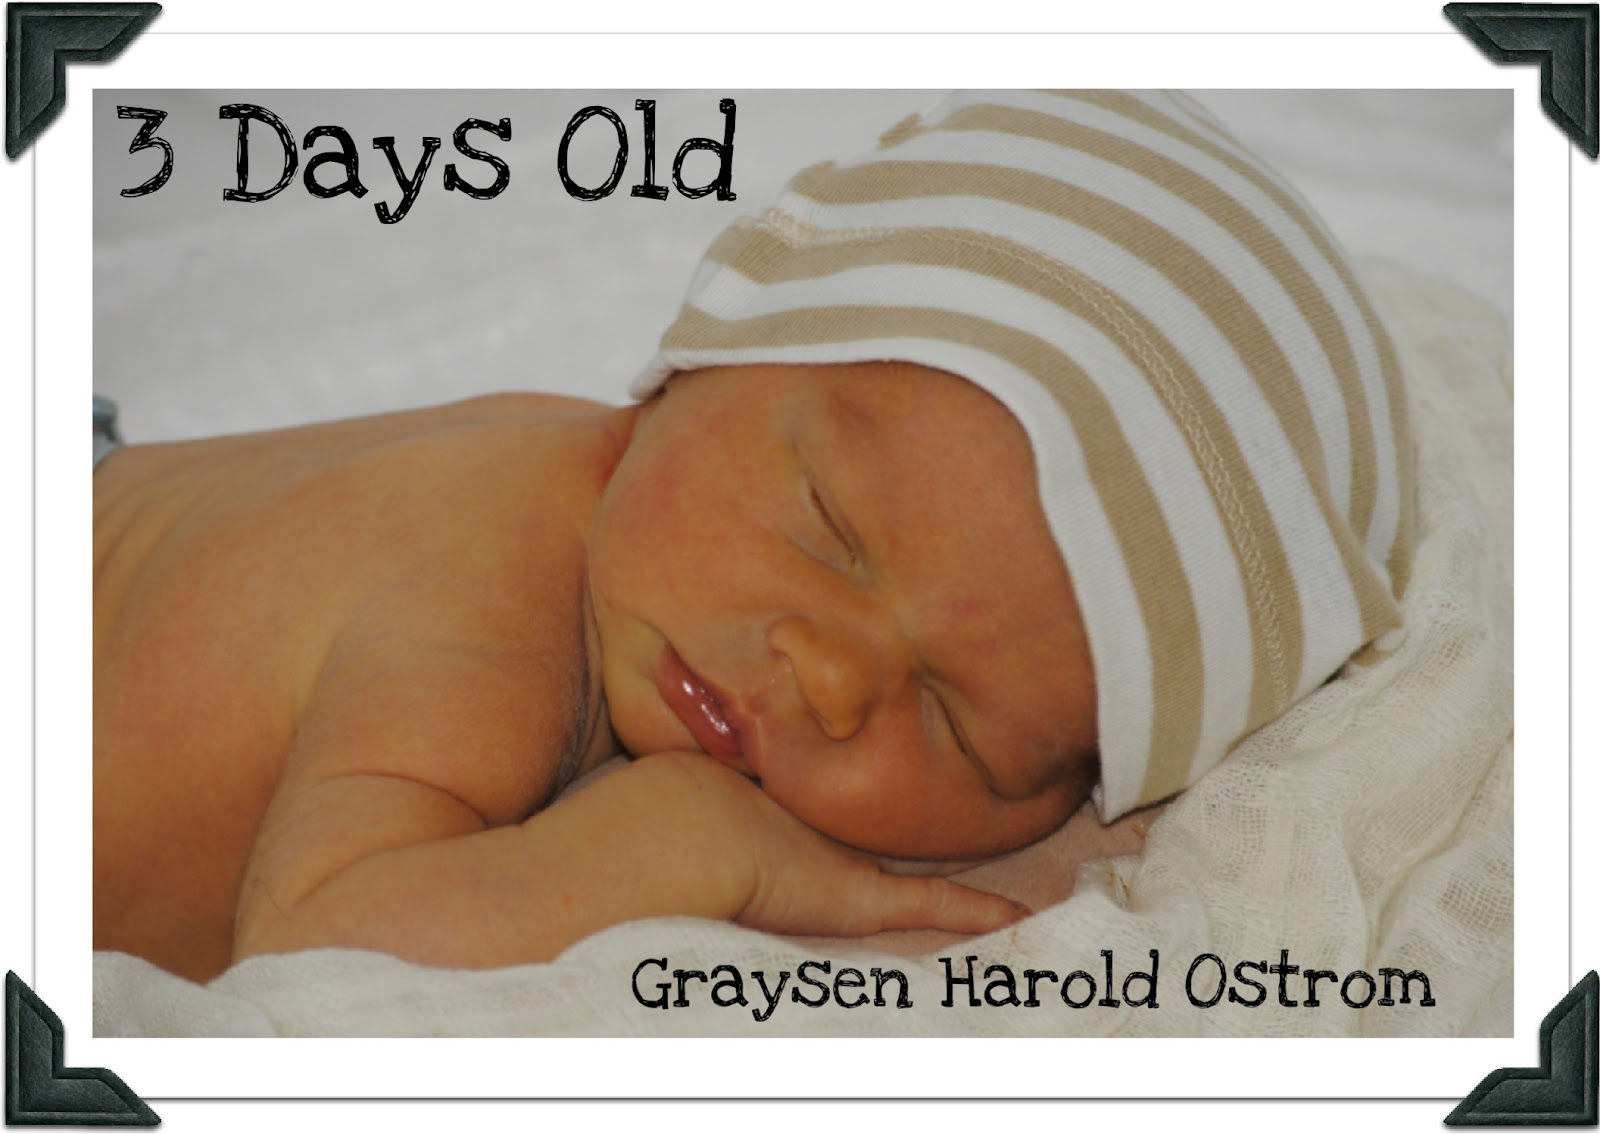 Ostroms' Odyssey: 38 Weeks   He Arrived! Graysen's Birth Story: Part 1